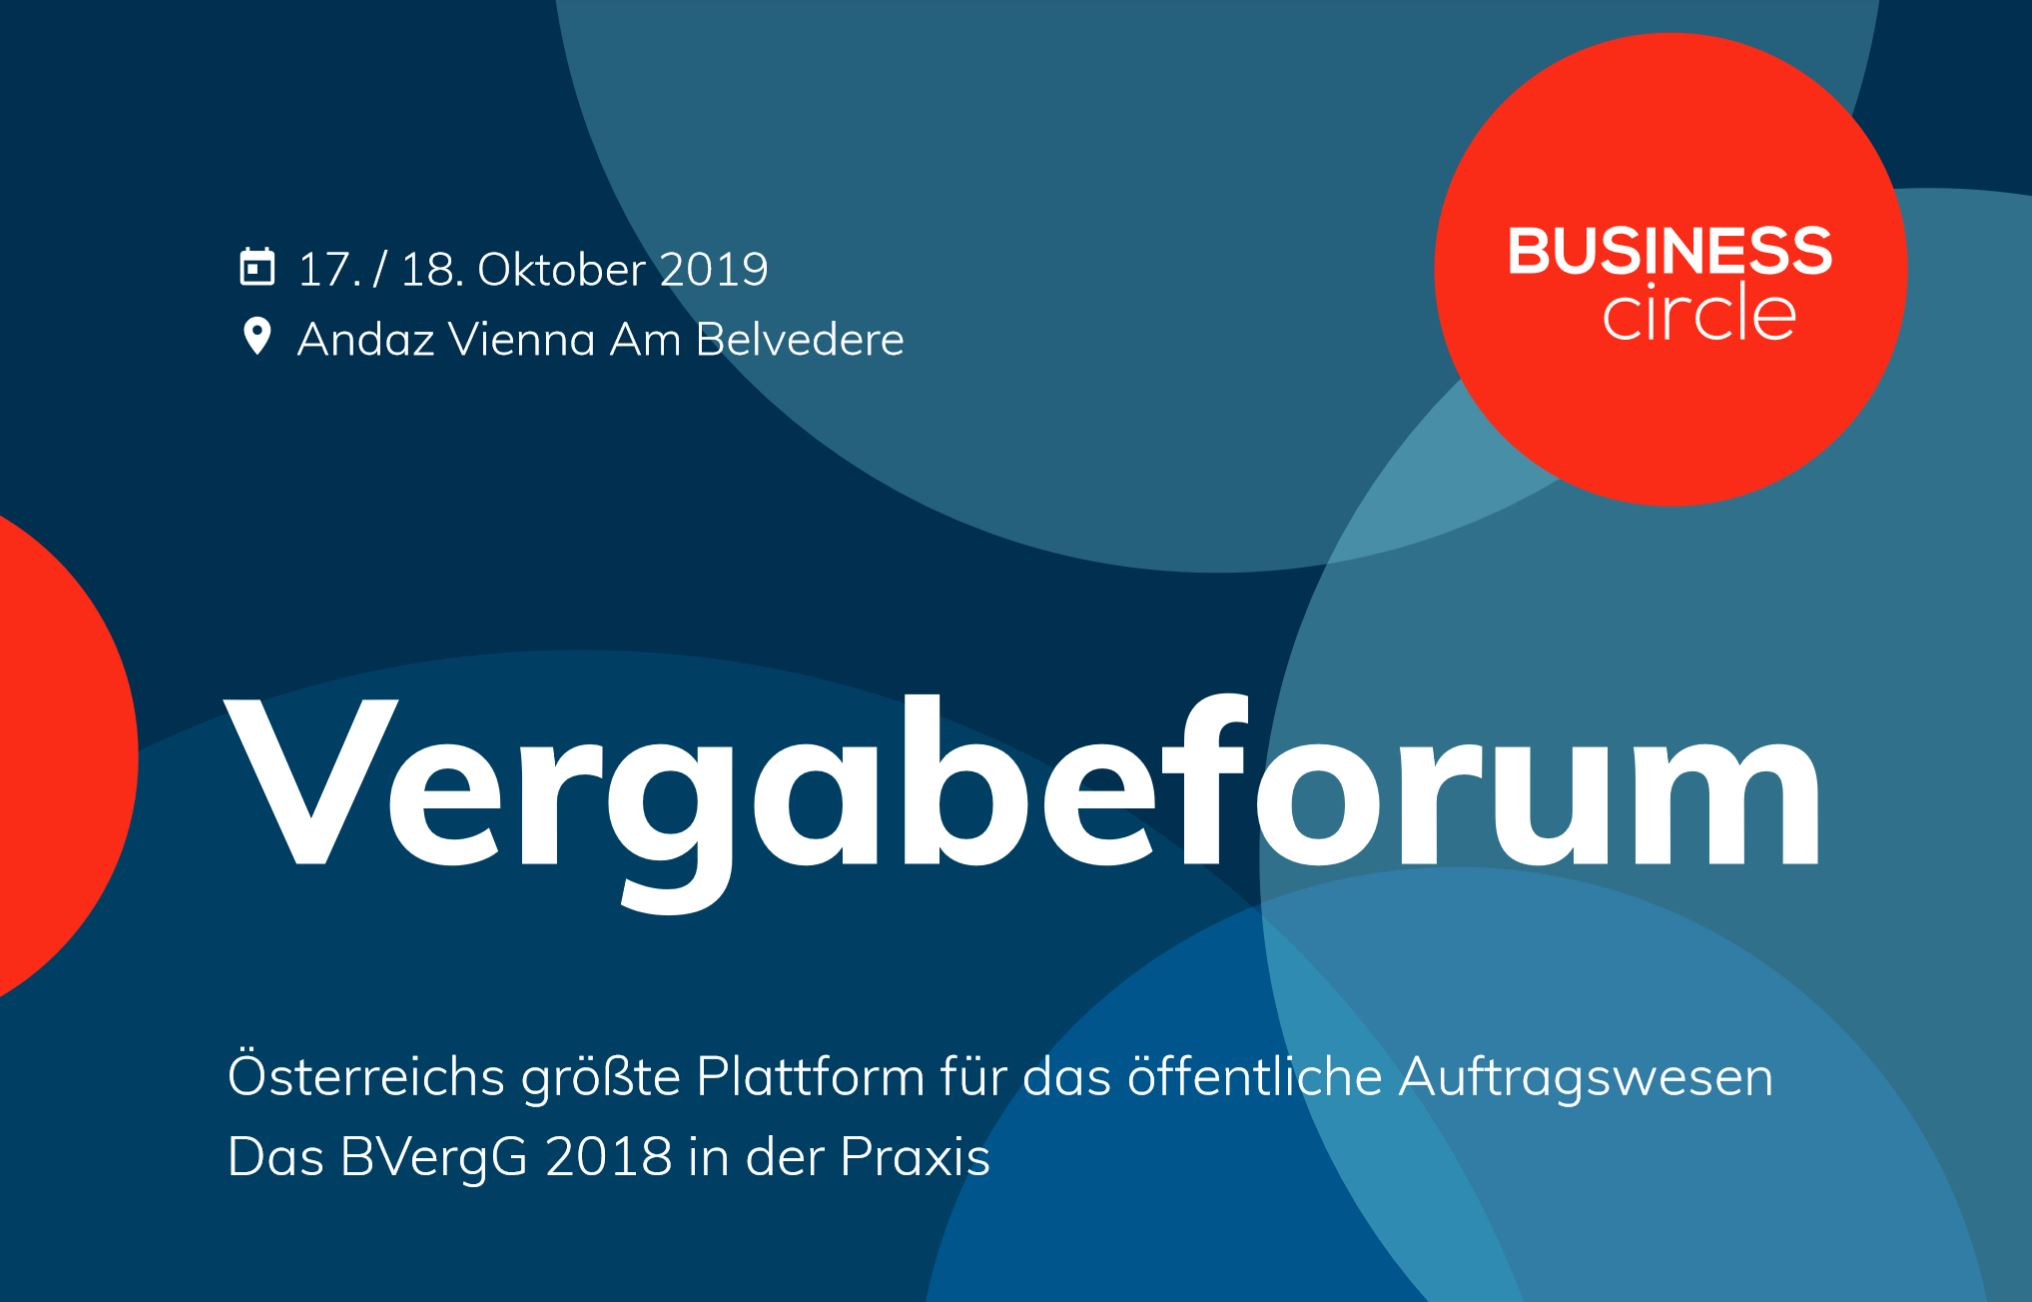 vergabeforum2019_2